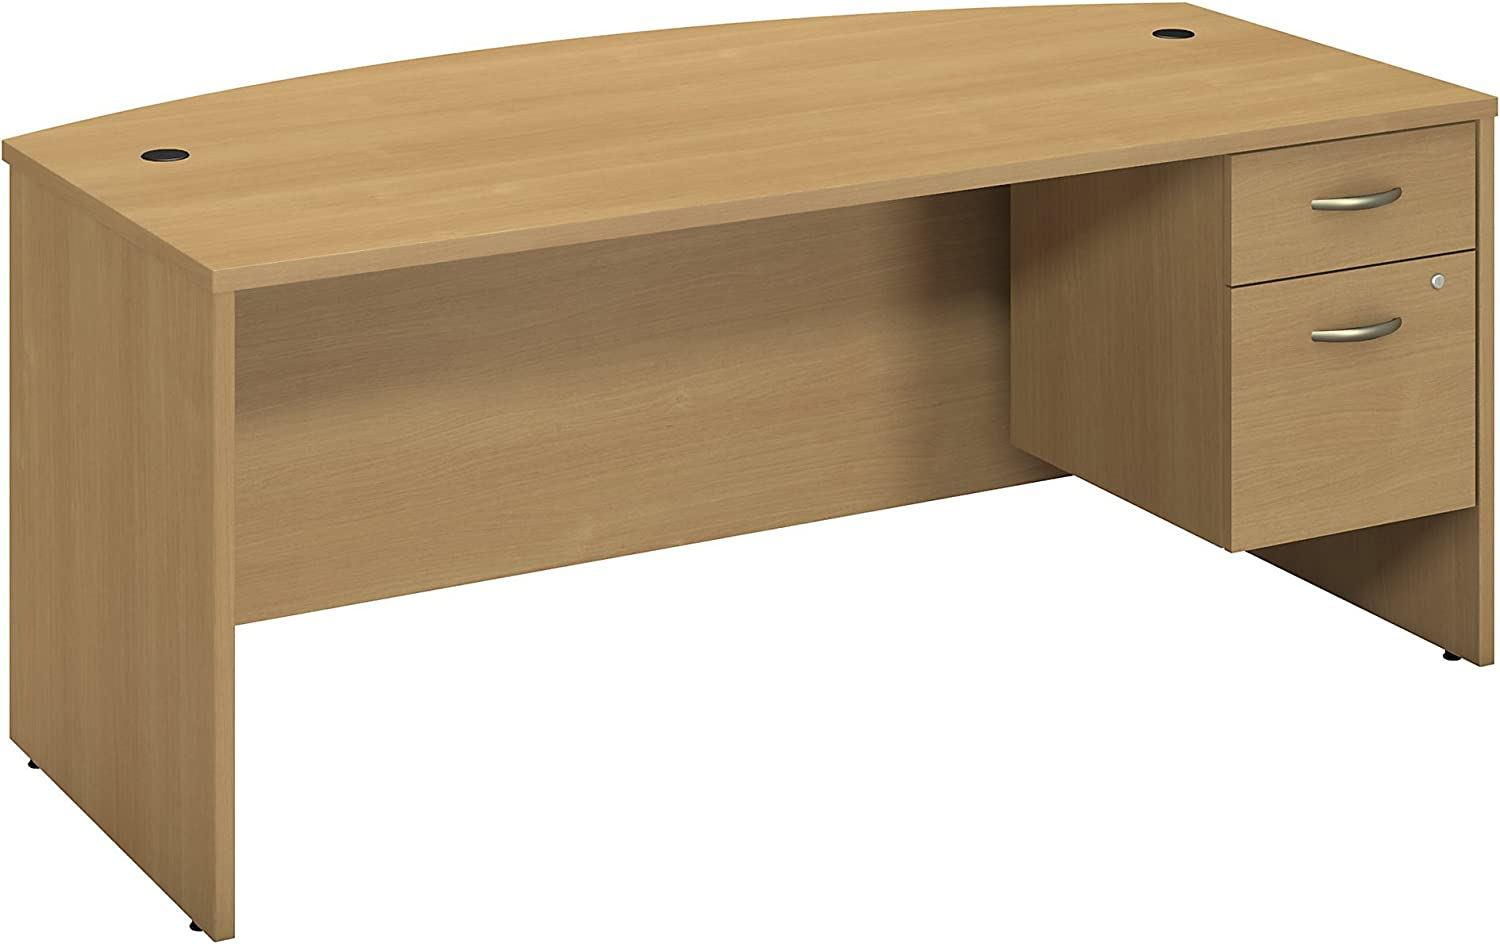 Bush Business Furniture Series C 72W X 36D Bowfront Desk with 3/4 Pedestal in Light Oak